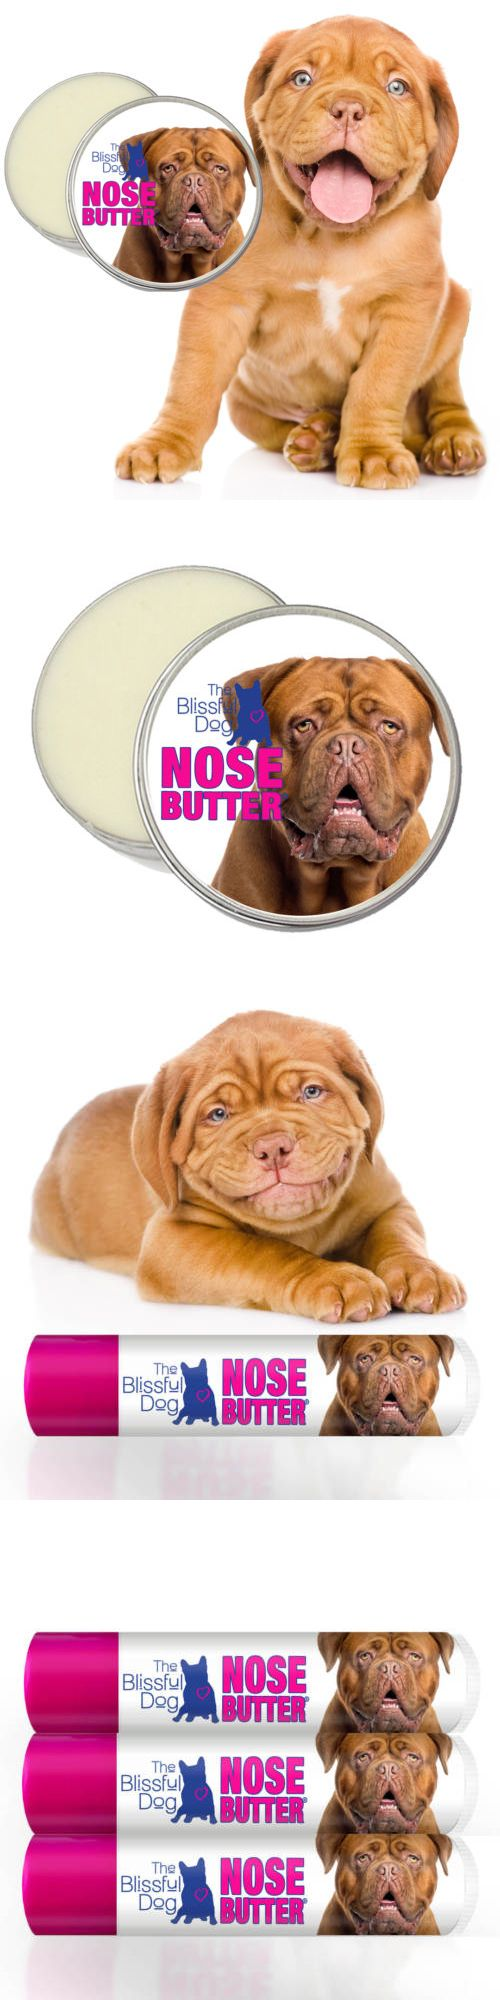 Other Dog Grooming 177794: Dogue De Bordeaux Nose Butter For Dry French Mastiff Noses Tins Tubes Scented Un -> BUY IT NOW ONLY: $32.95 on eBay!